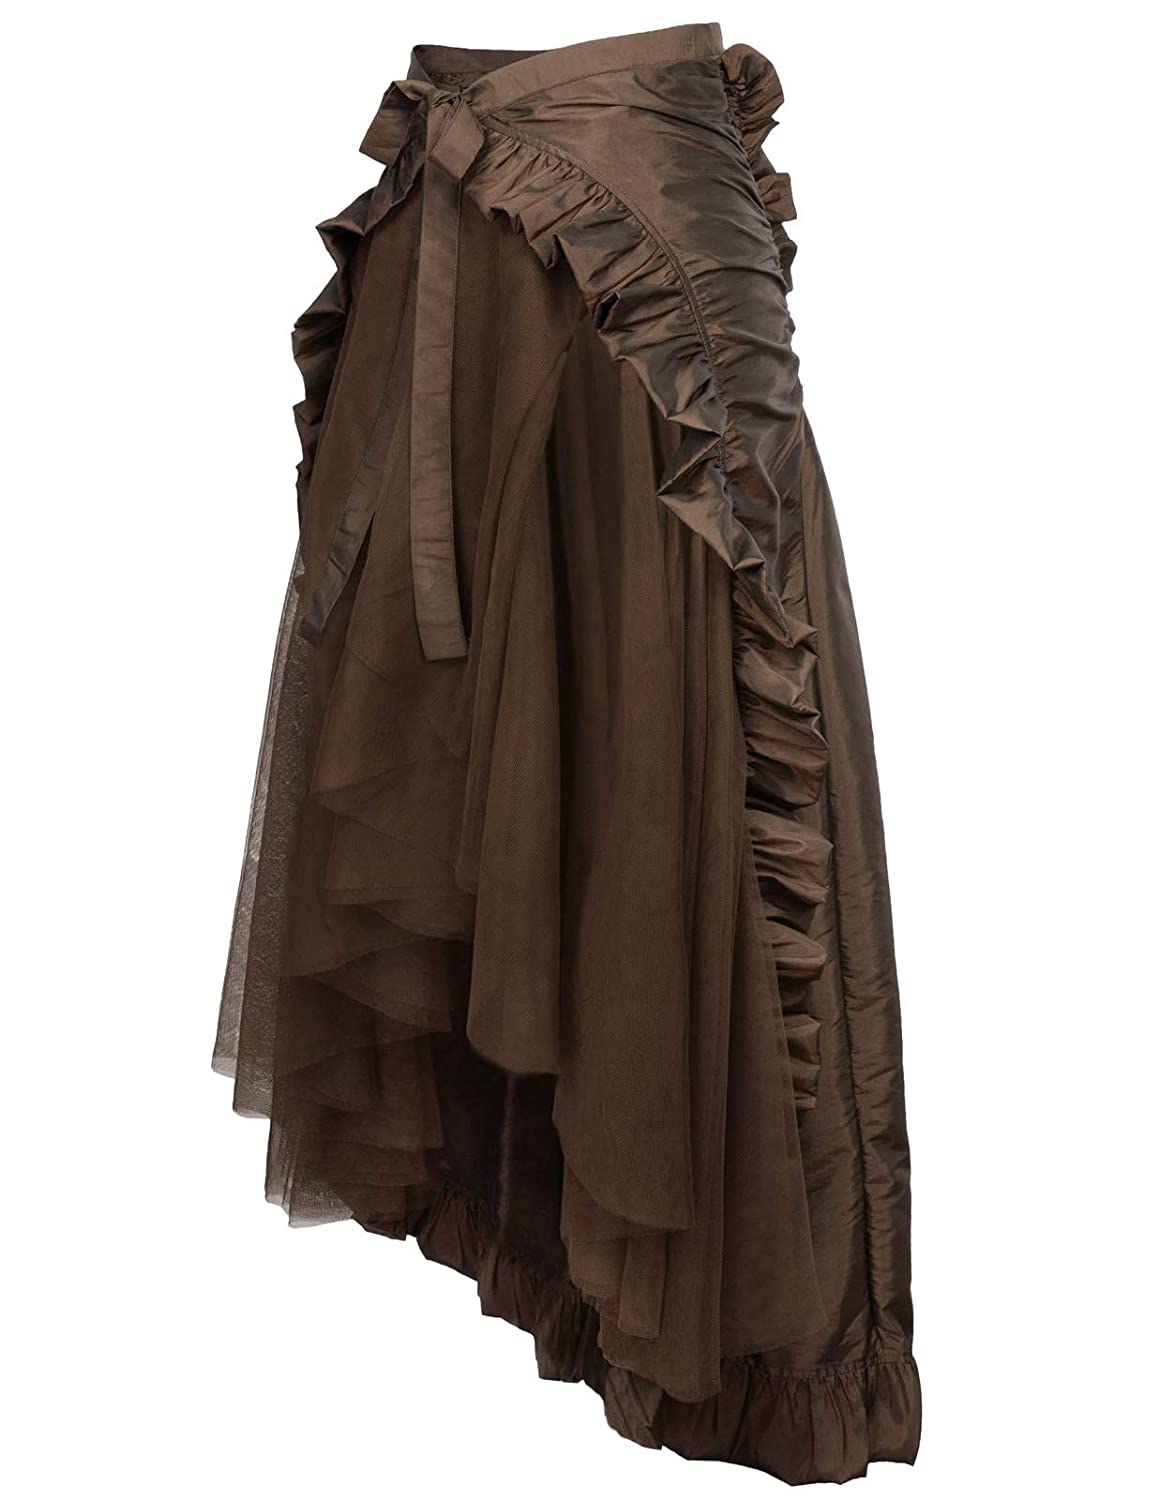 c7821be5bf34 Women's Steampunk Gothic Skirt Victorian Ruffles Pirate Skirt Wrap/Cape at  Amazon Women's Clothing store: